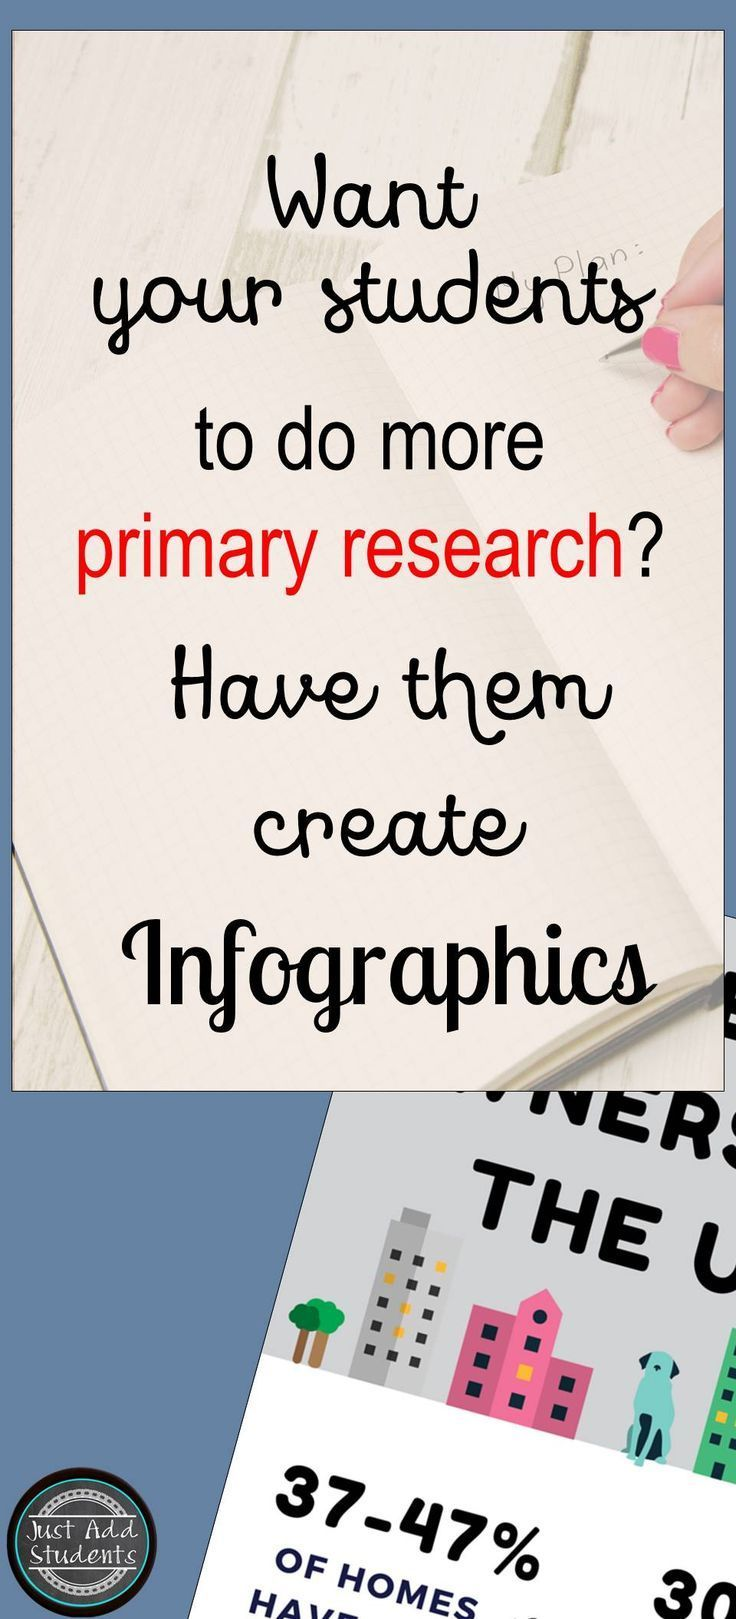 Practice primary research skills as they gather data to create an infographic. No prep -- ready to go! Fun, creative project that will get students moving and thinking about how to research and interview. Perfect prep for research writing unit.